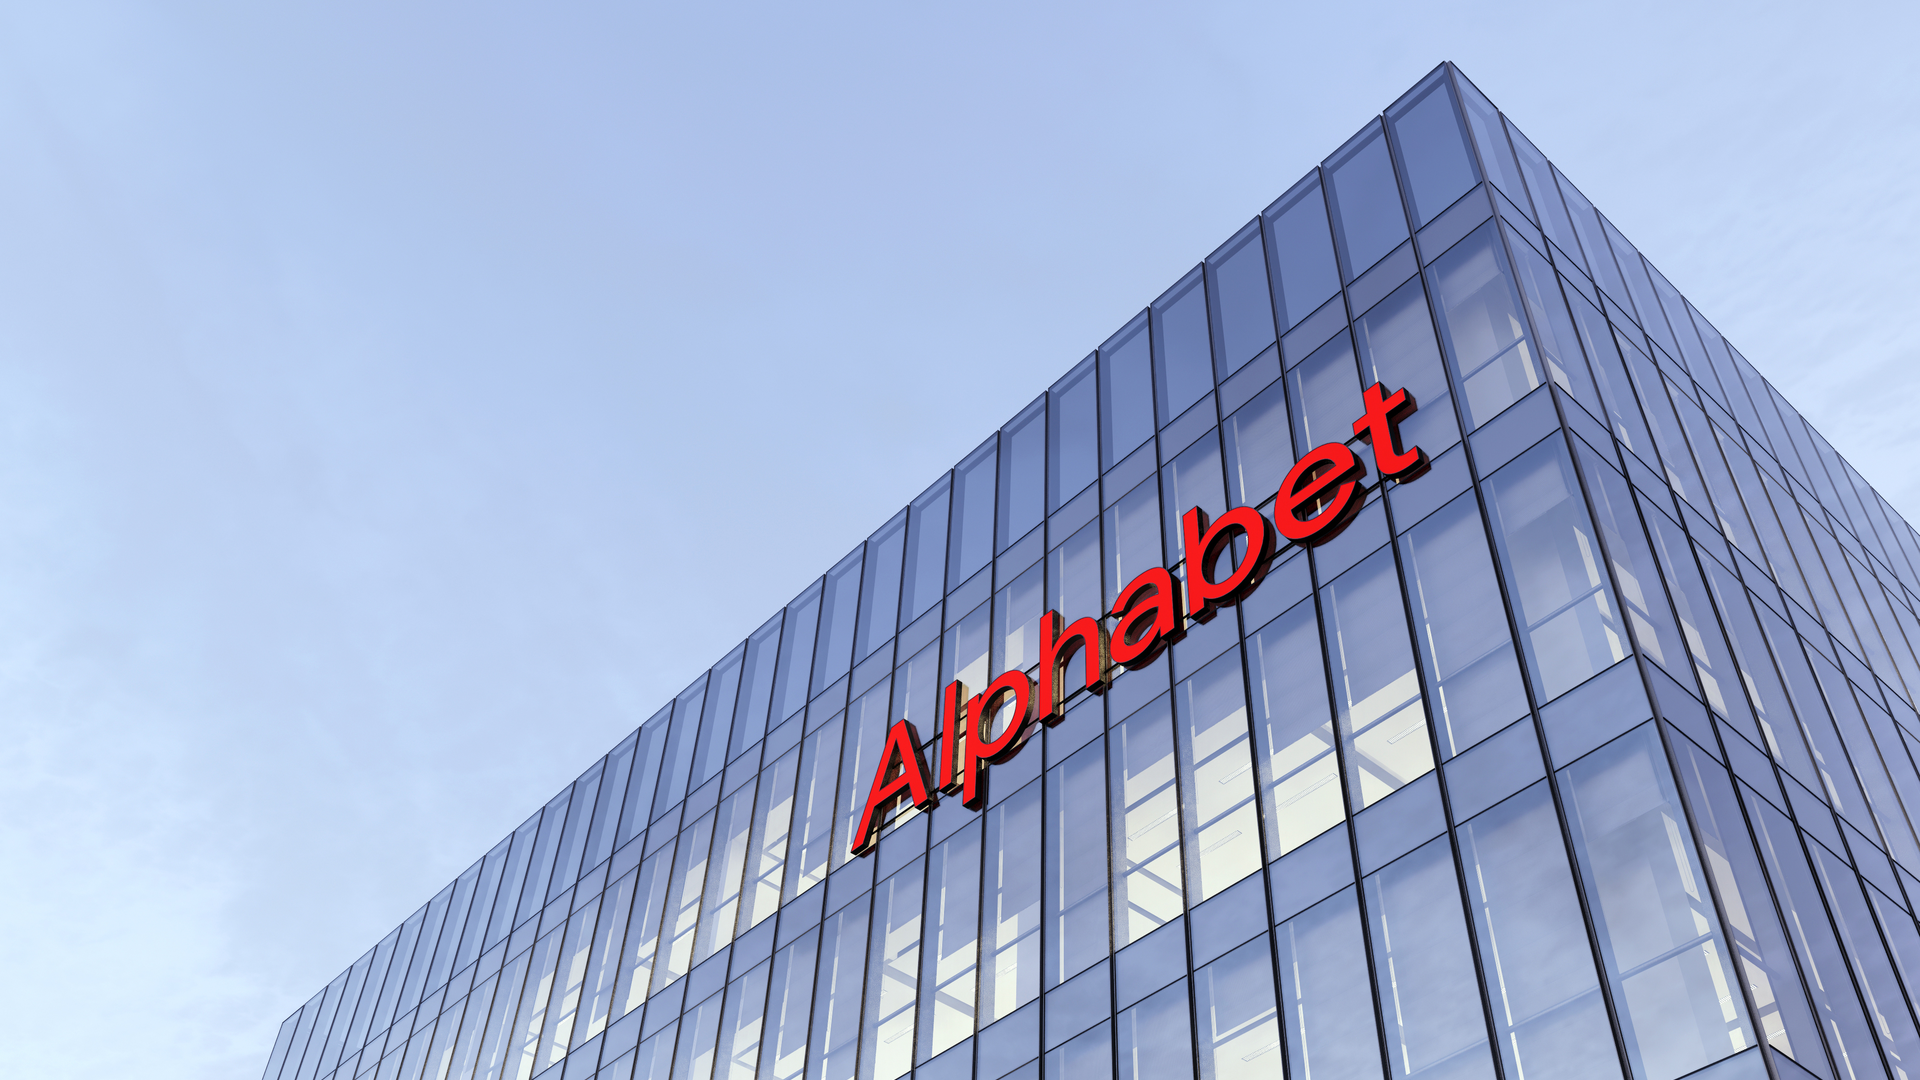 Global Financial Engineering Weekly Trades Analysis for Alphabet Inc. (GOOG)